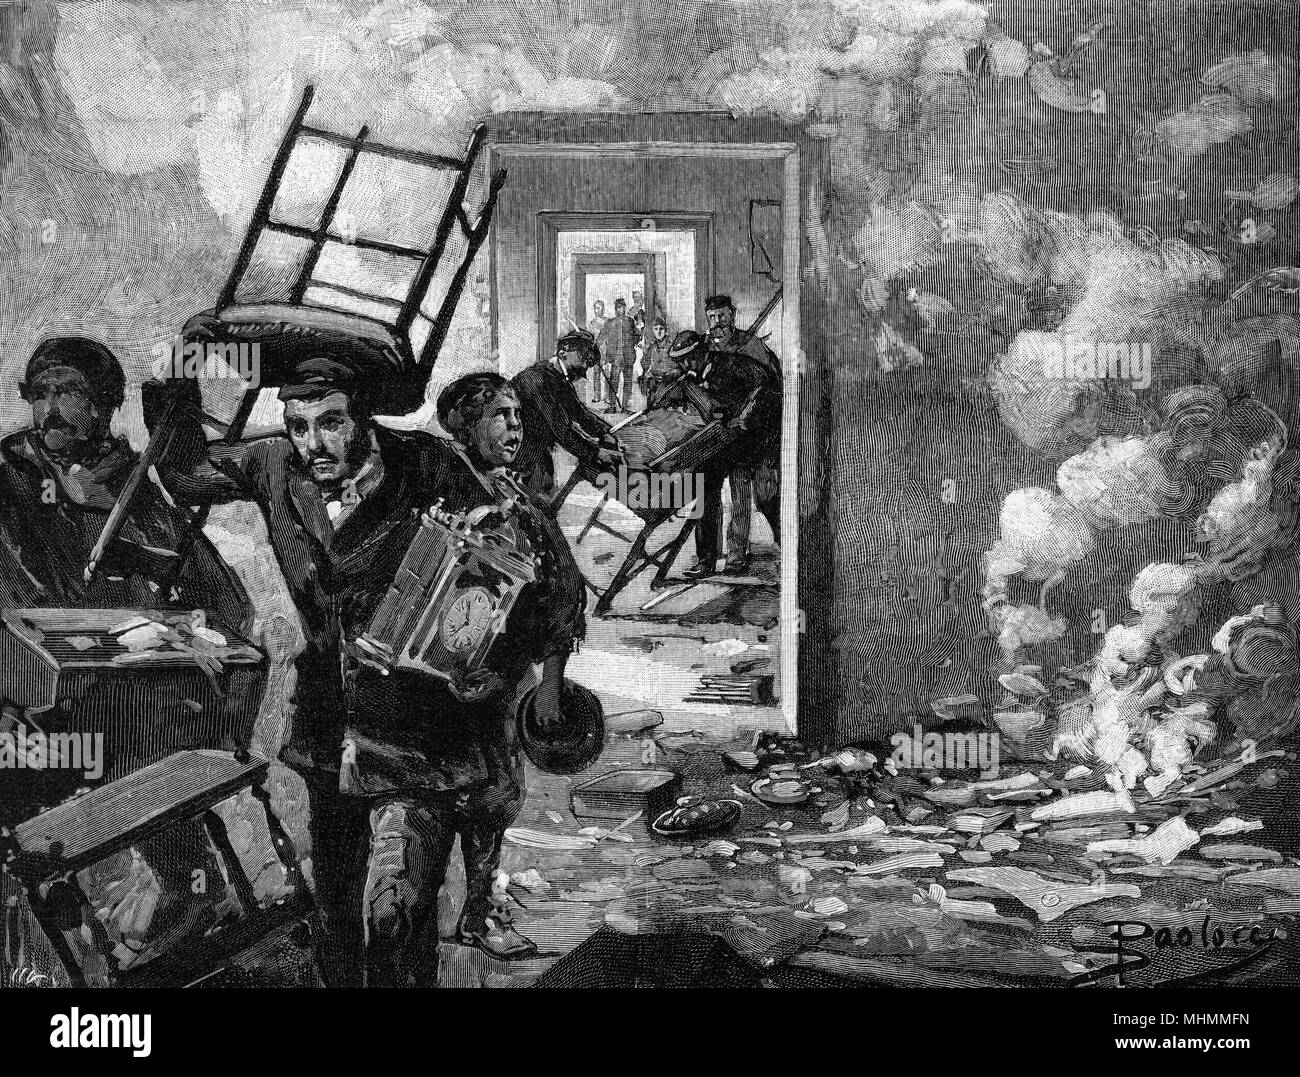 Following two years of unrest and protest by the 'Fasci Siciliani', violence erupts : government offices at Mazzara del Vallo are ransacked by the mob.     Date: January 1894 - Stock Image